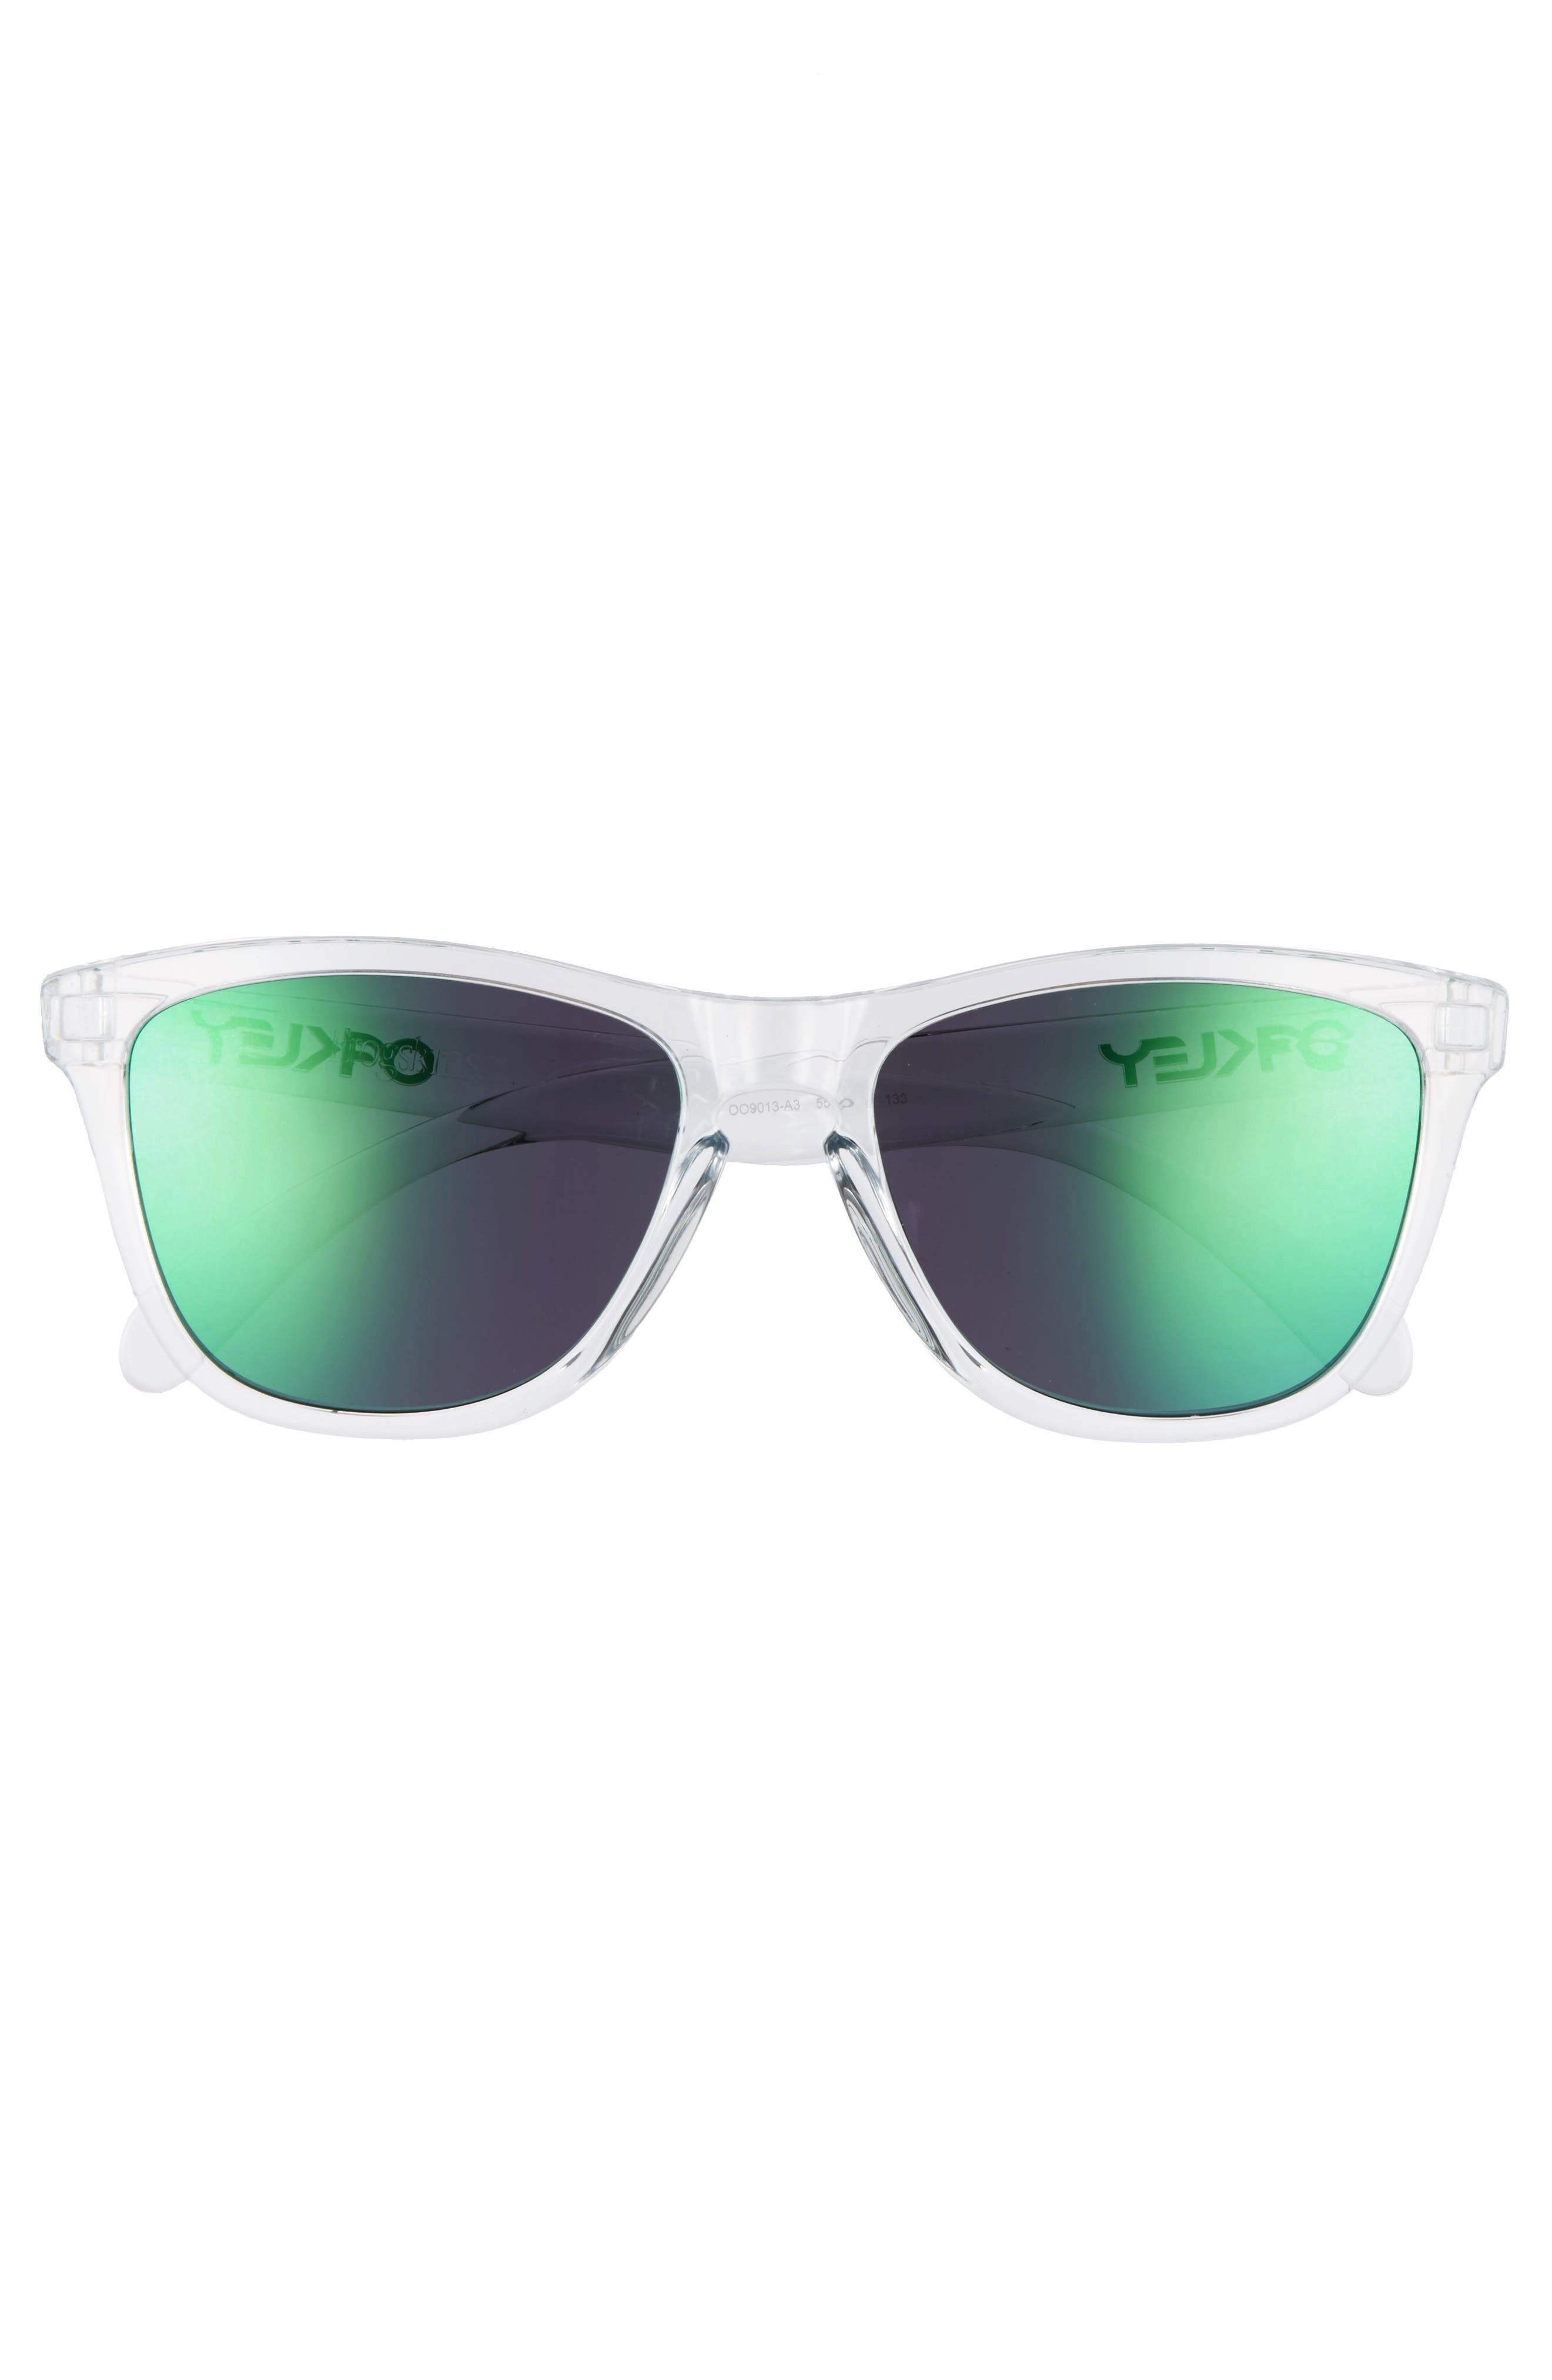 Frogskins<sup>®</sup> 55mm Sunglasses,                             Alternate thumbnail 2, color,                             300